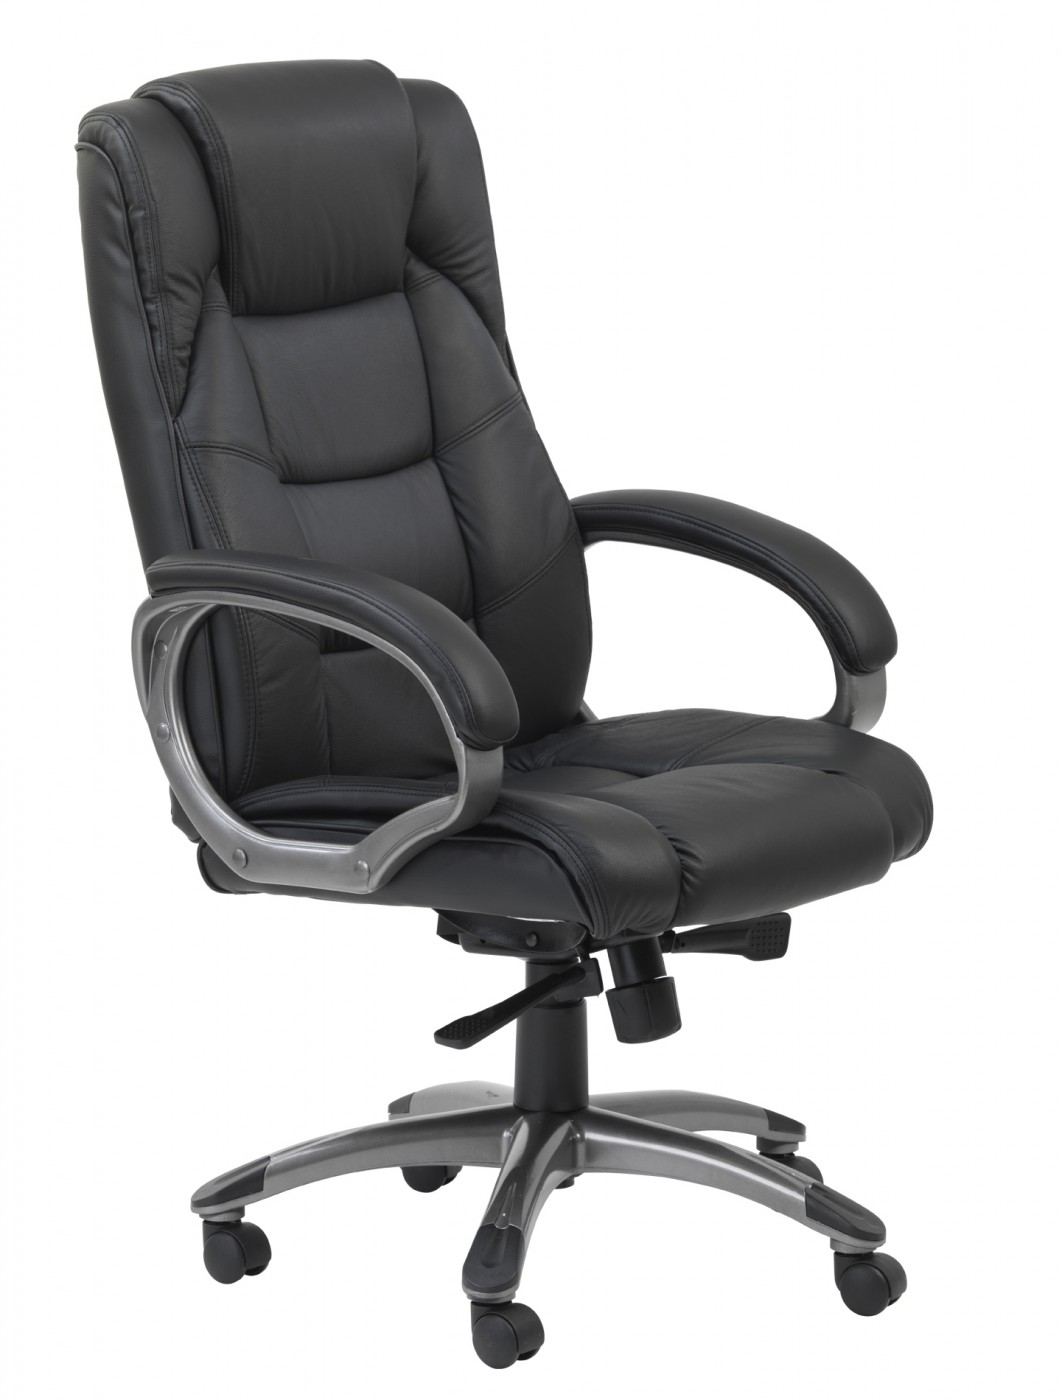 leather executive chair one piece rocking cushions aoc6322 l 121 office furniture